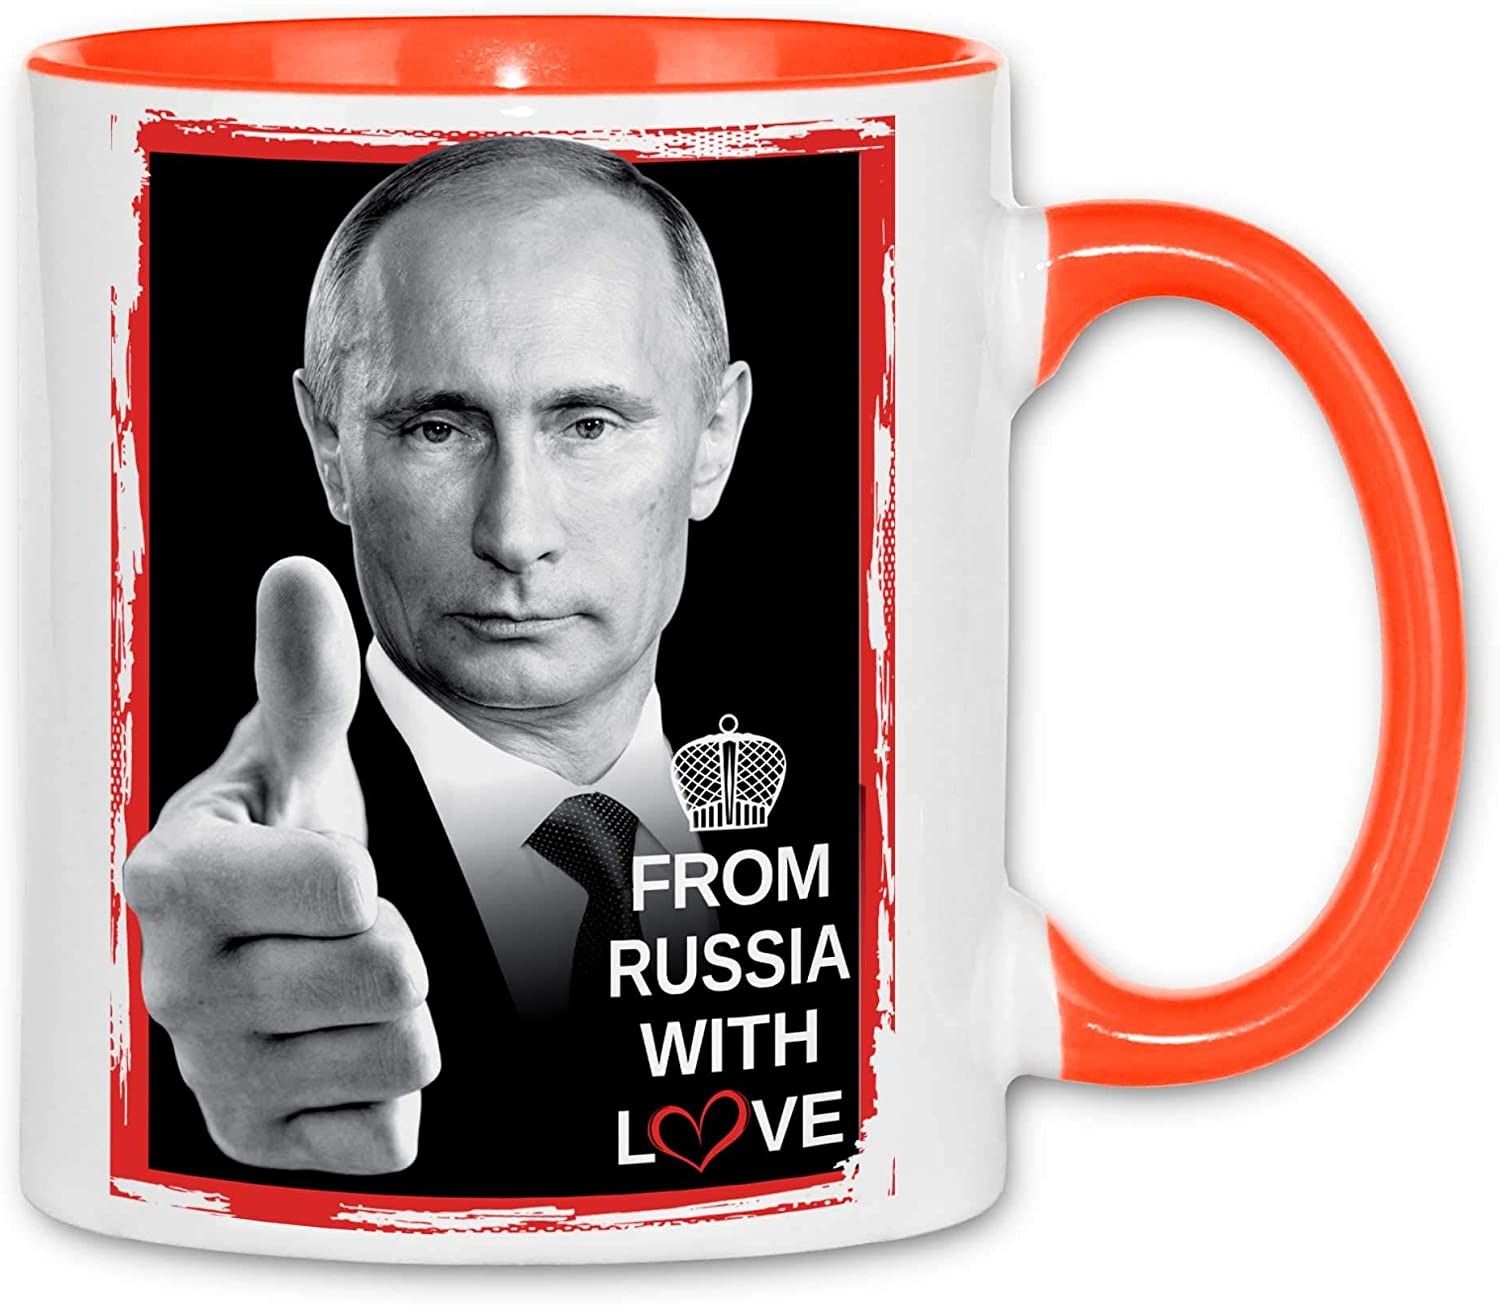 Russia President Moscow Farbe Royal Shirt rs48 Mug from Russia with Love Tassen :White